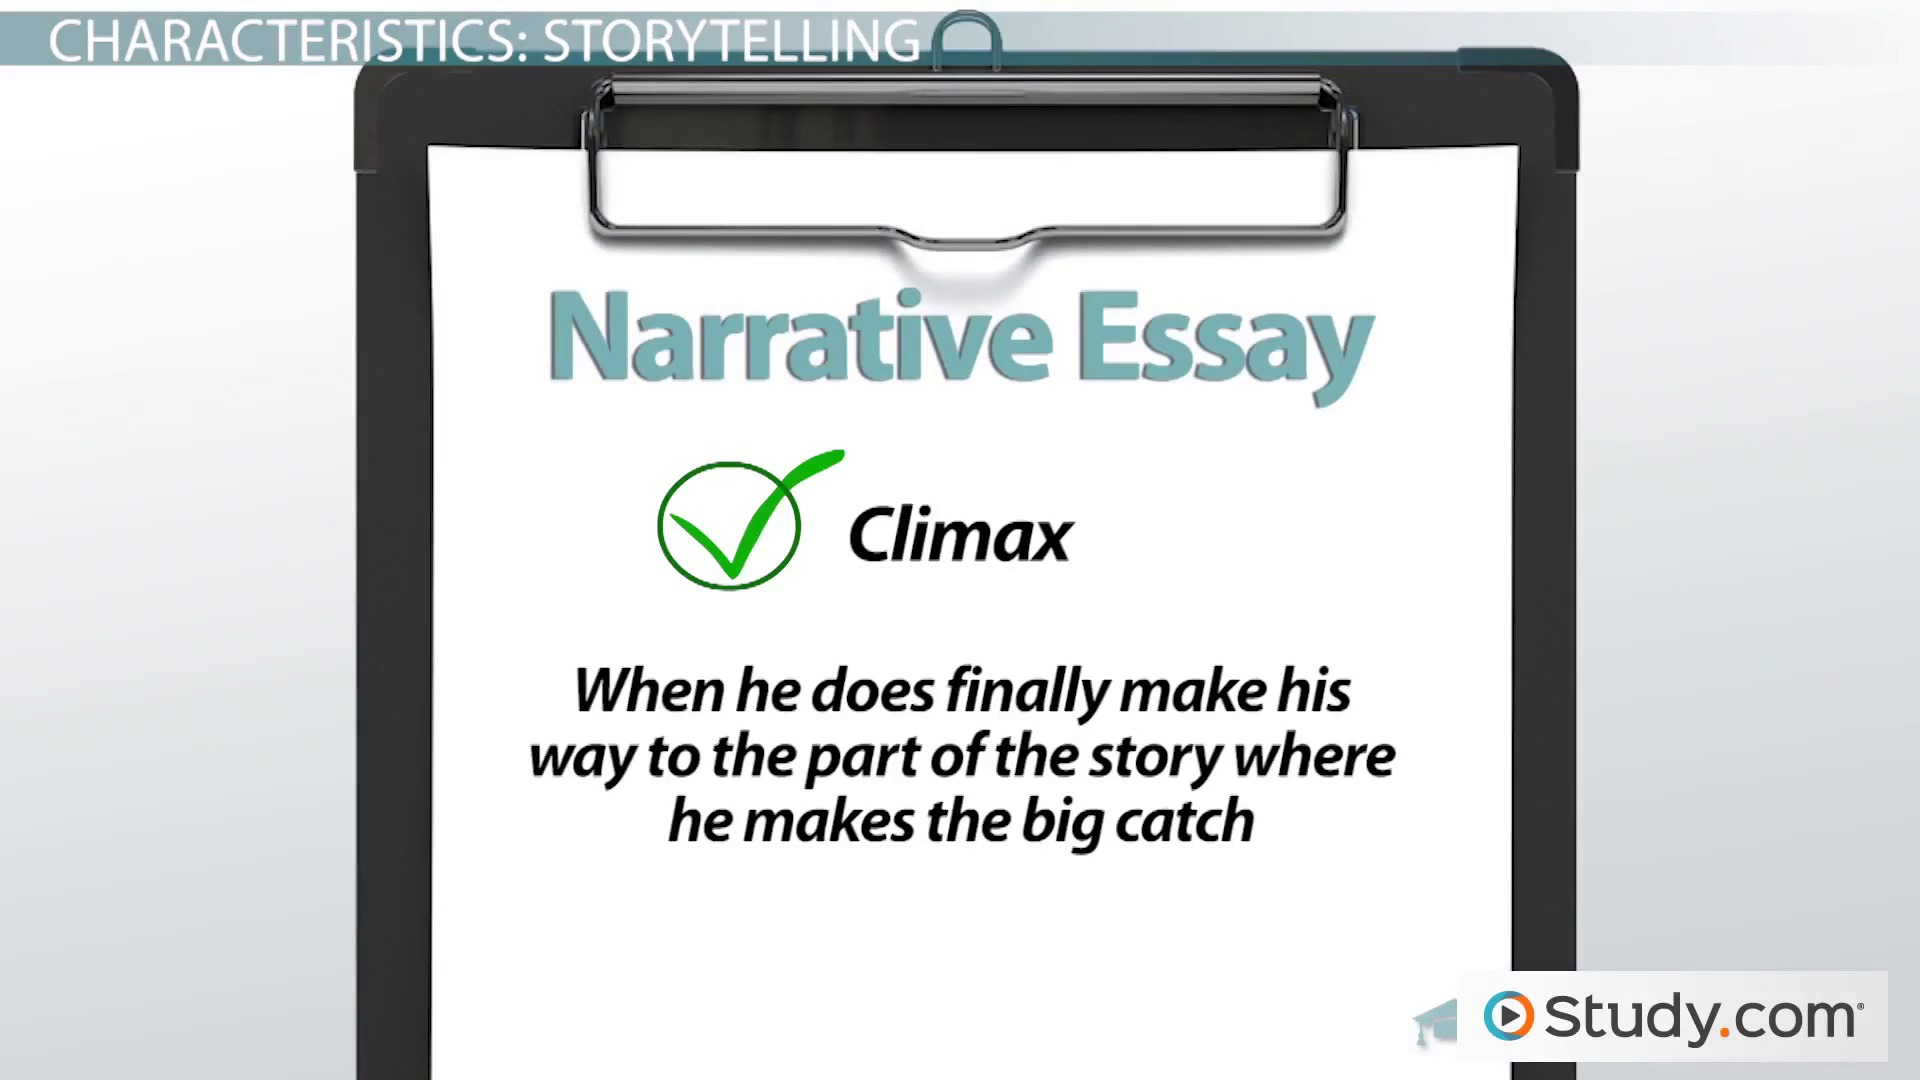 essay expository essays types characteristics examples video  expository essays types characteristics examples video narrative essay definition examples characteristics